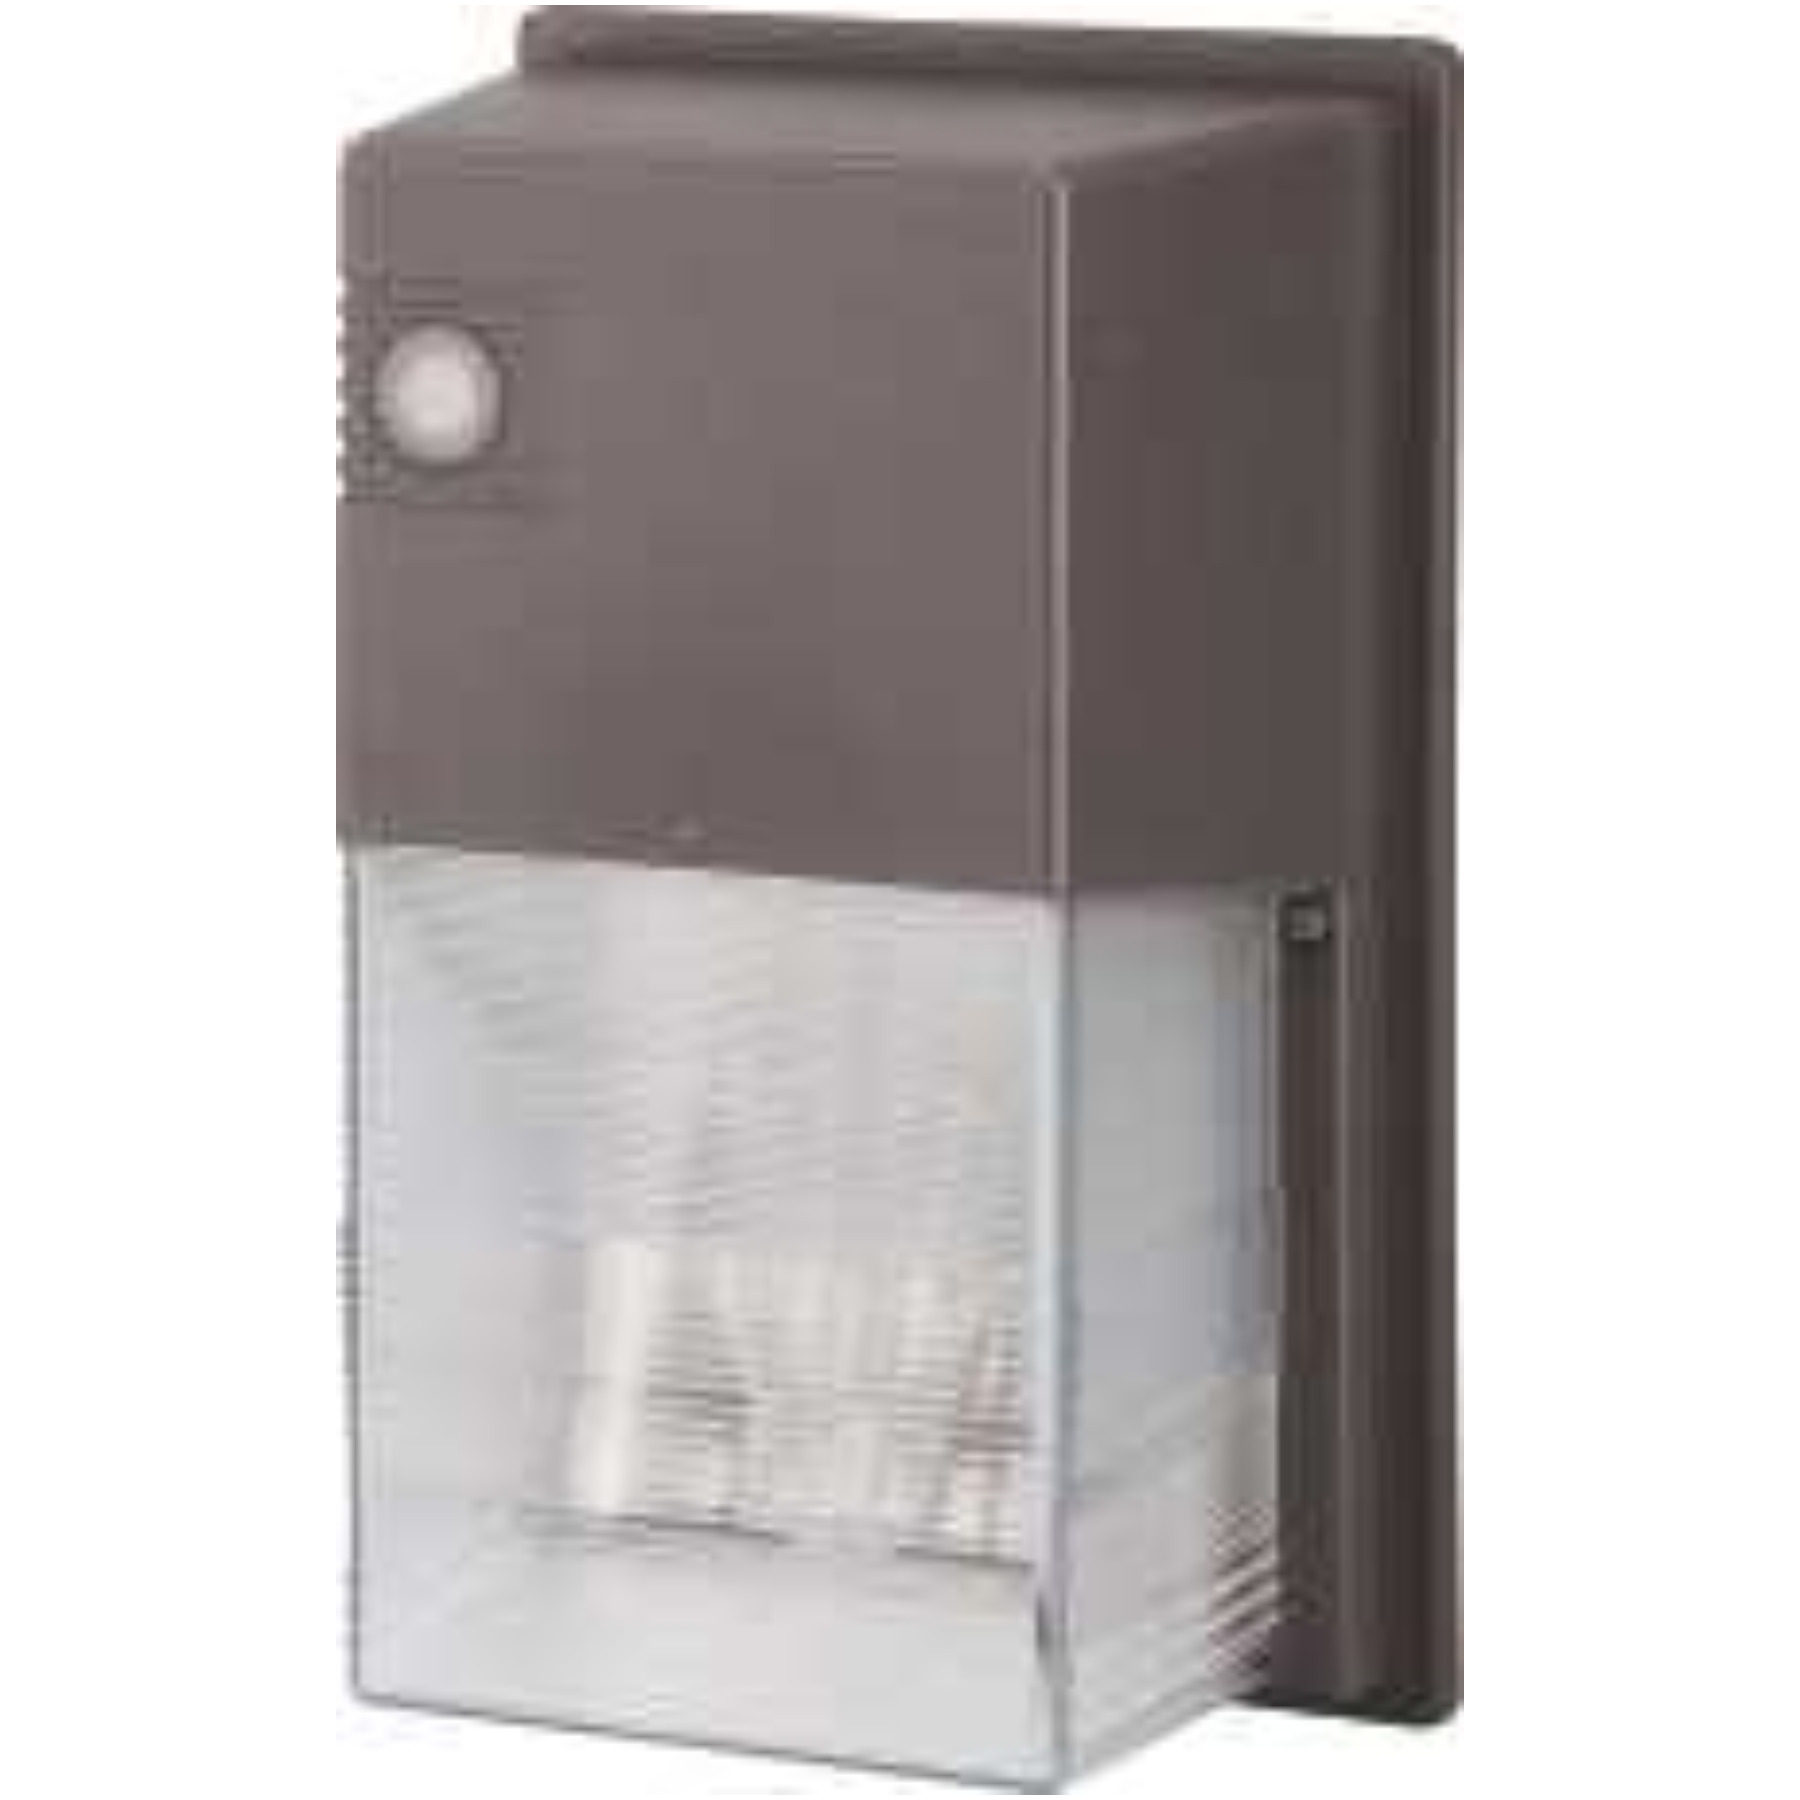 MONUMENT ENERGY-EFFICIENT WALL FLOODLIGHT, BRONZE, 6-3/4X11X5-1/4 IN., 1 50-WATT HIGH-PRESSURE SODIUM LAMP (INCLUDED)